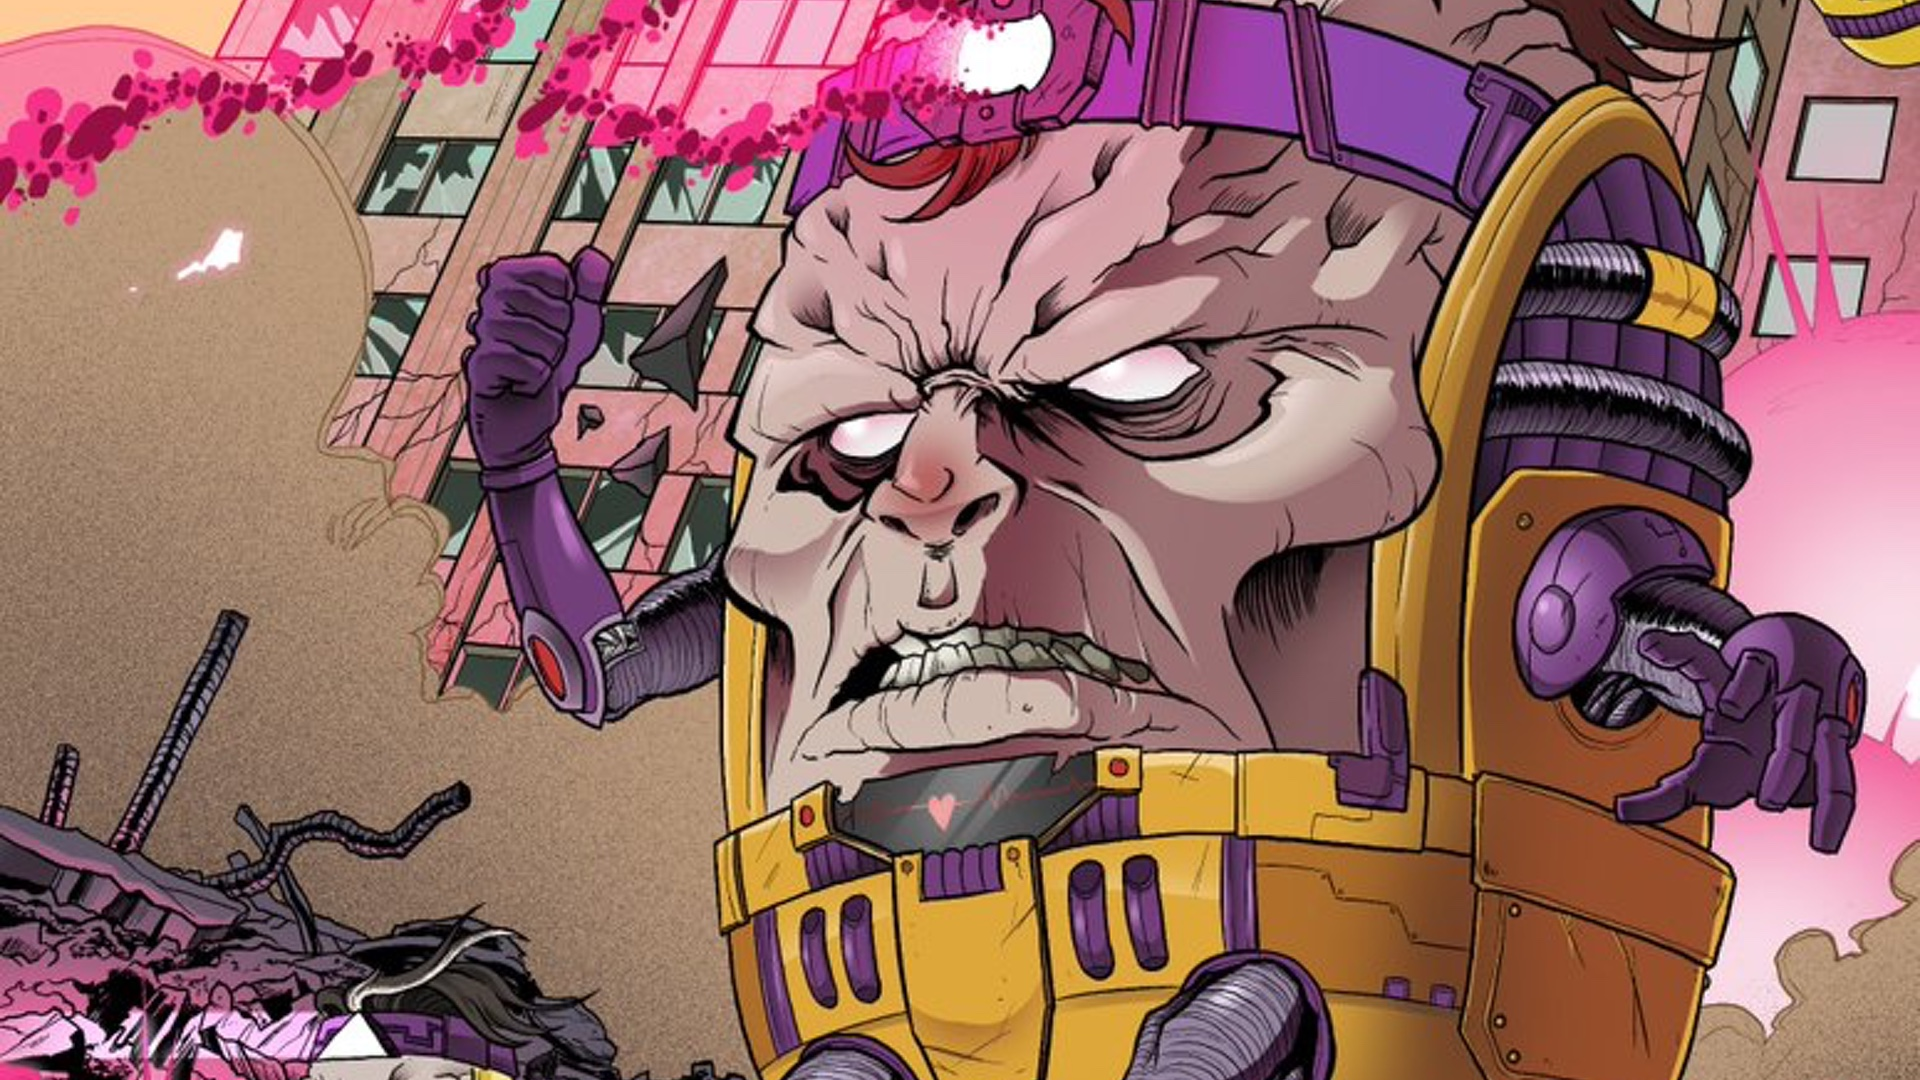 patton-oswalt-will-be-voicing-modok-in-marvel-and-hulus-animated-series-social.jpg